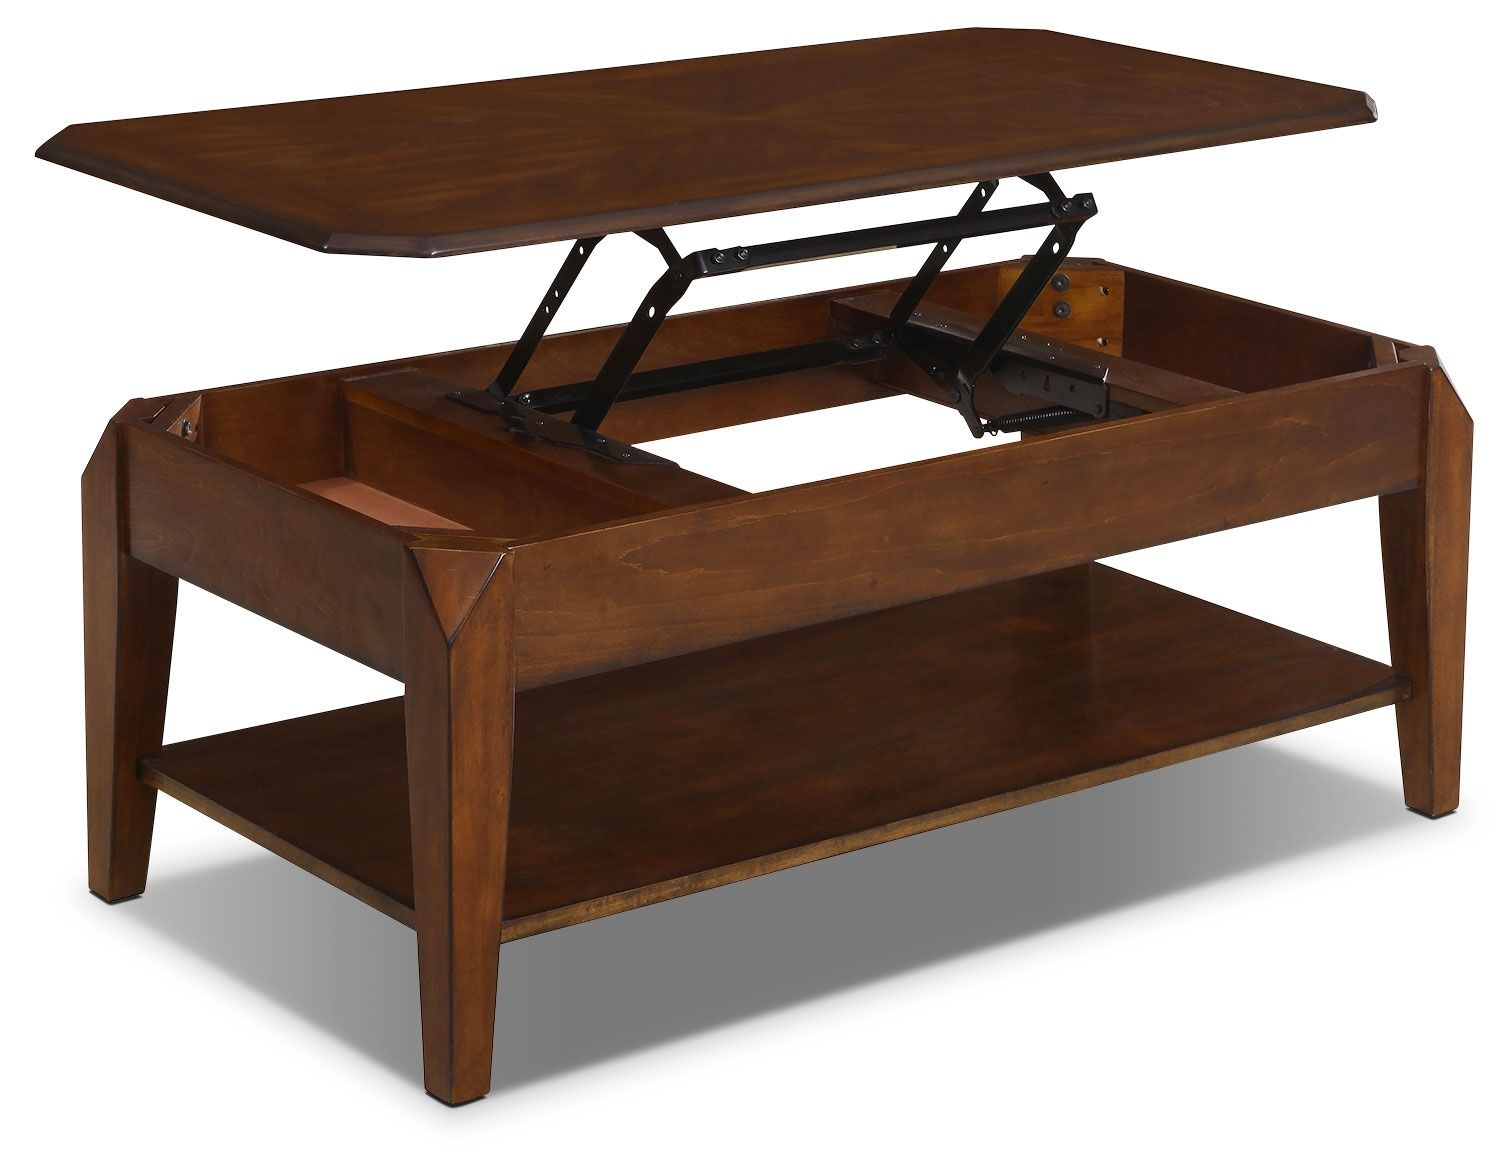 Duntara Coffee Table With Lift Top   The Brick